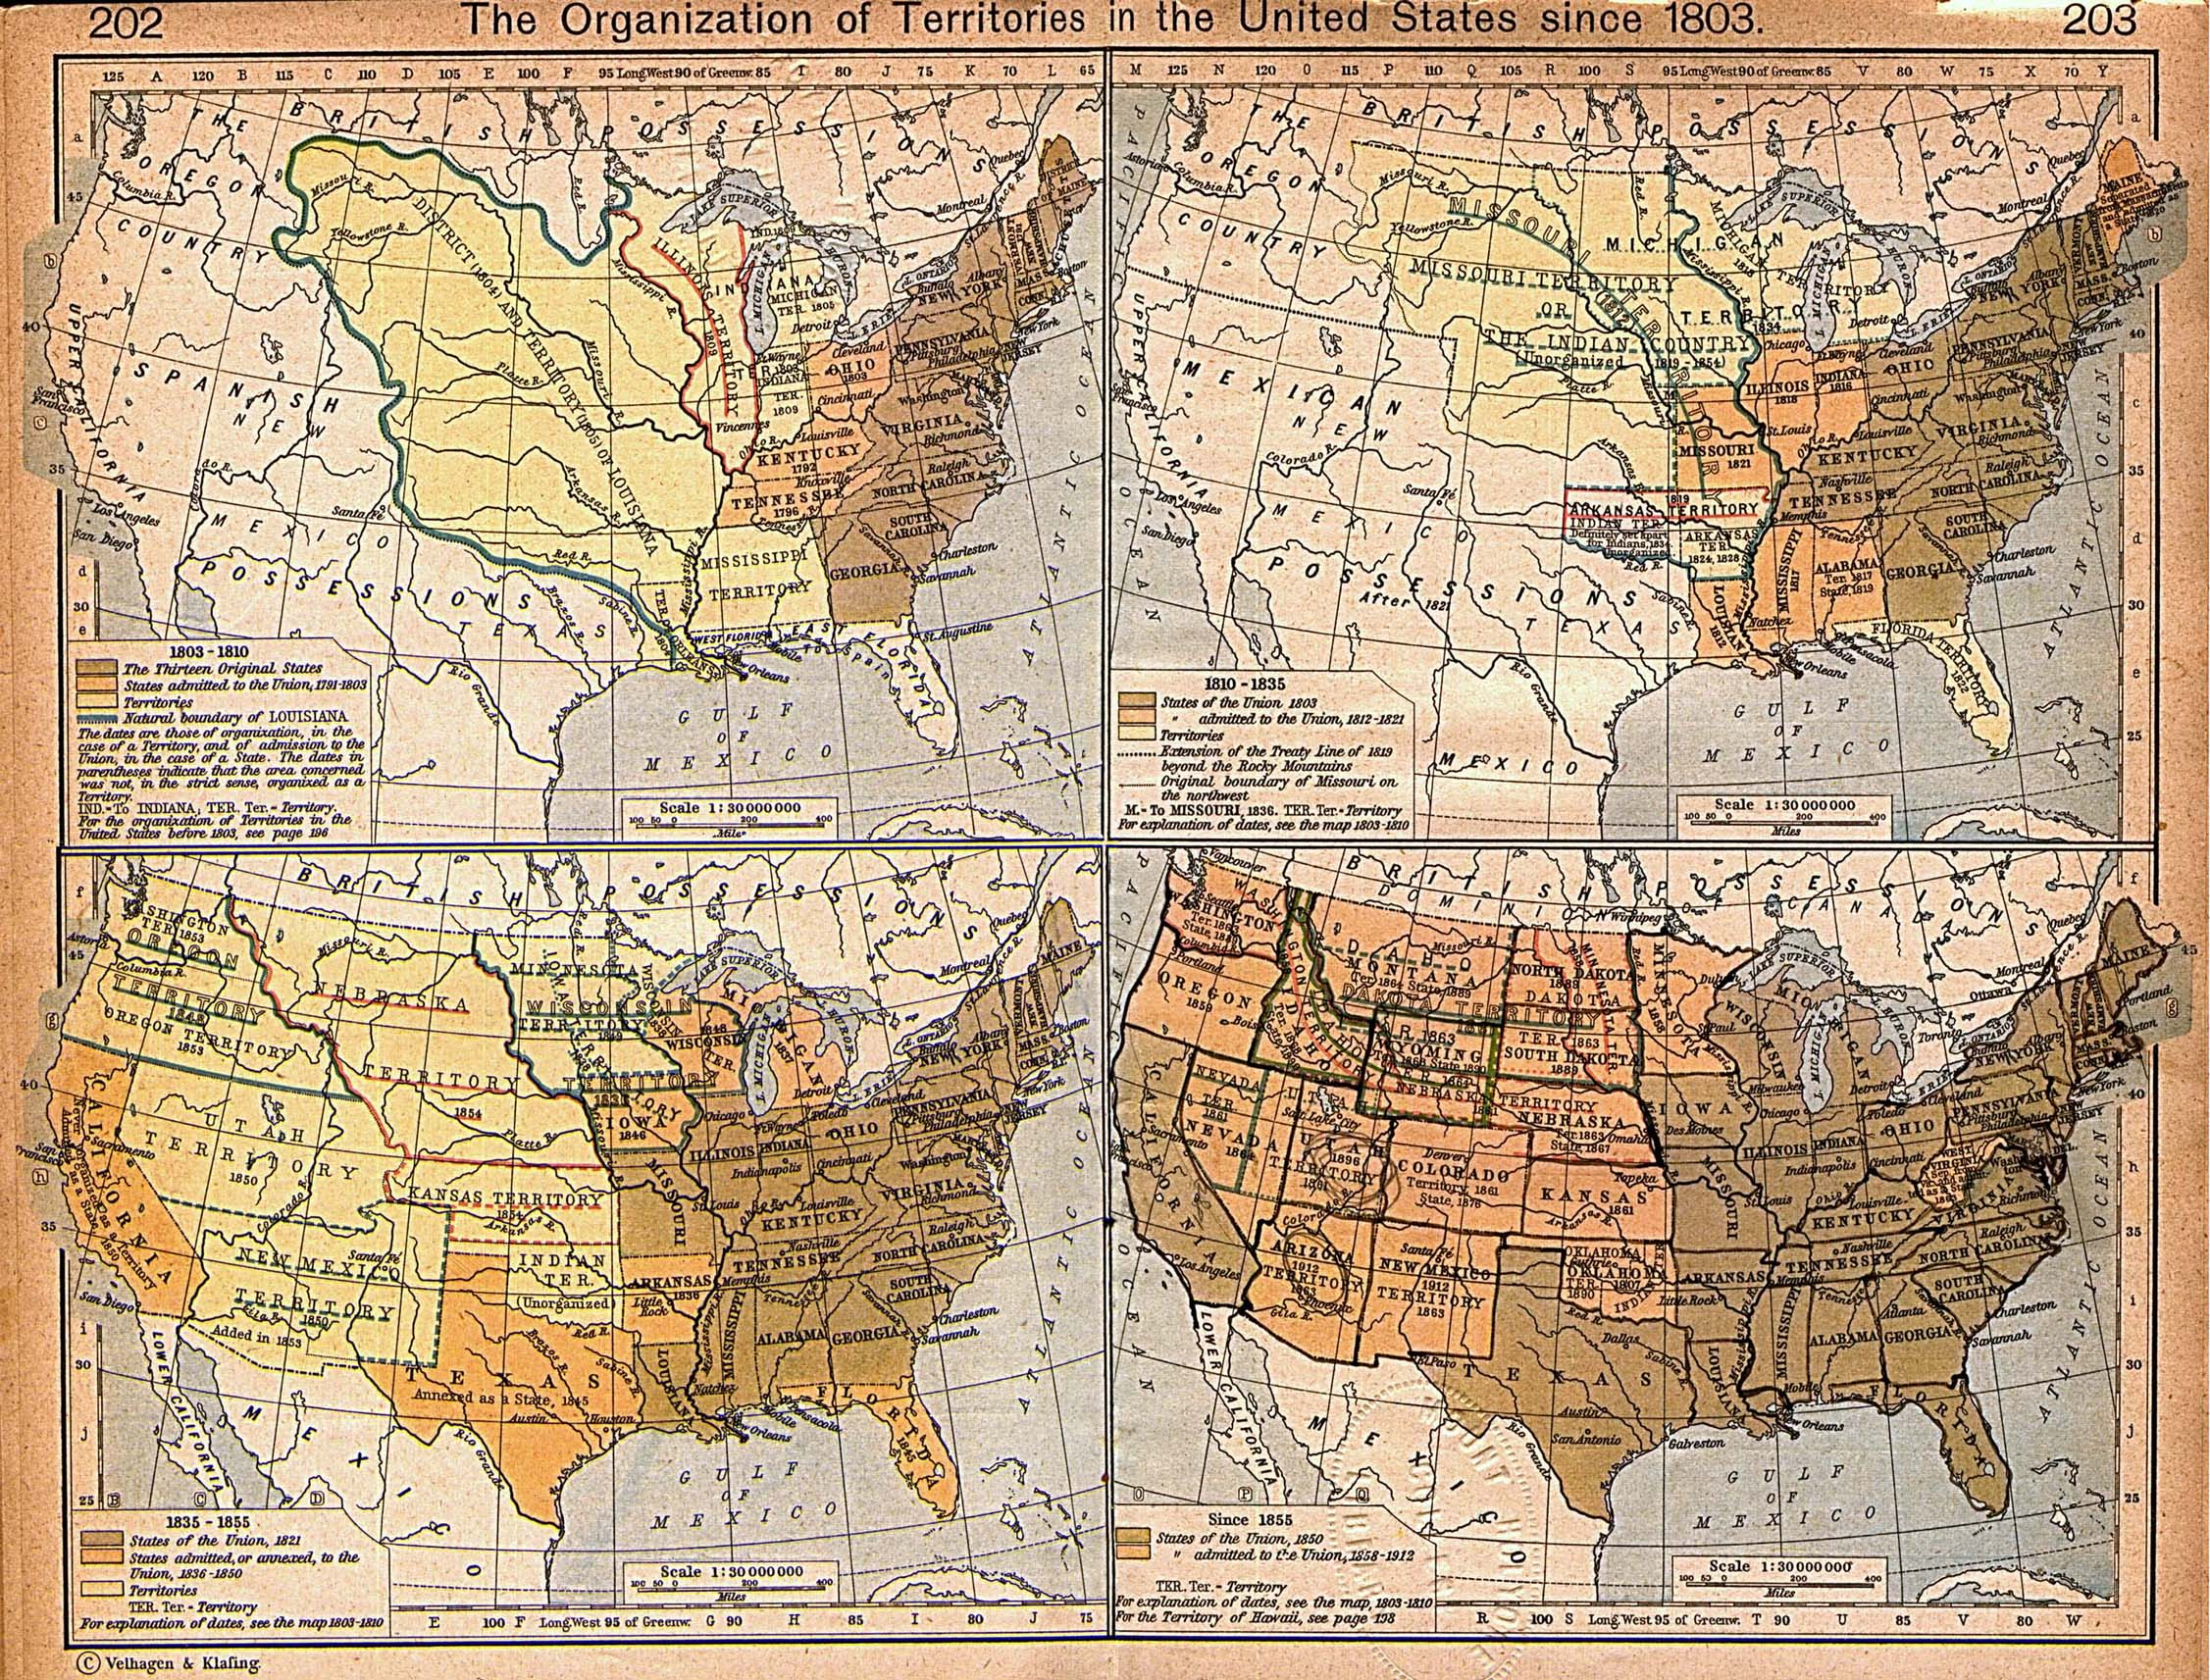 United States Historical Maps   Perry Casta    eda Map Collection   UT     The Organization of Territories in the United States since 1803